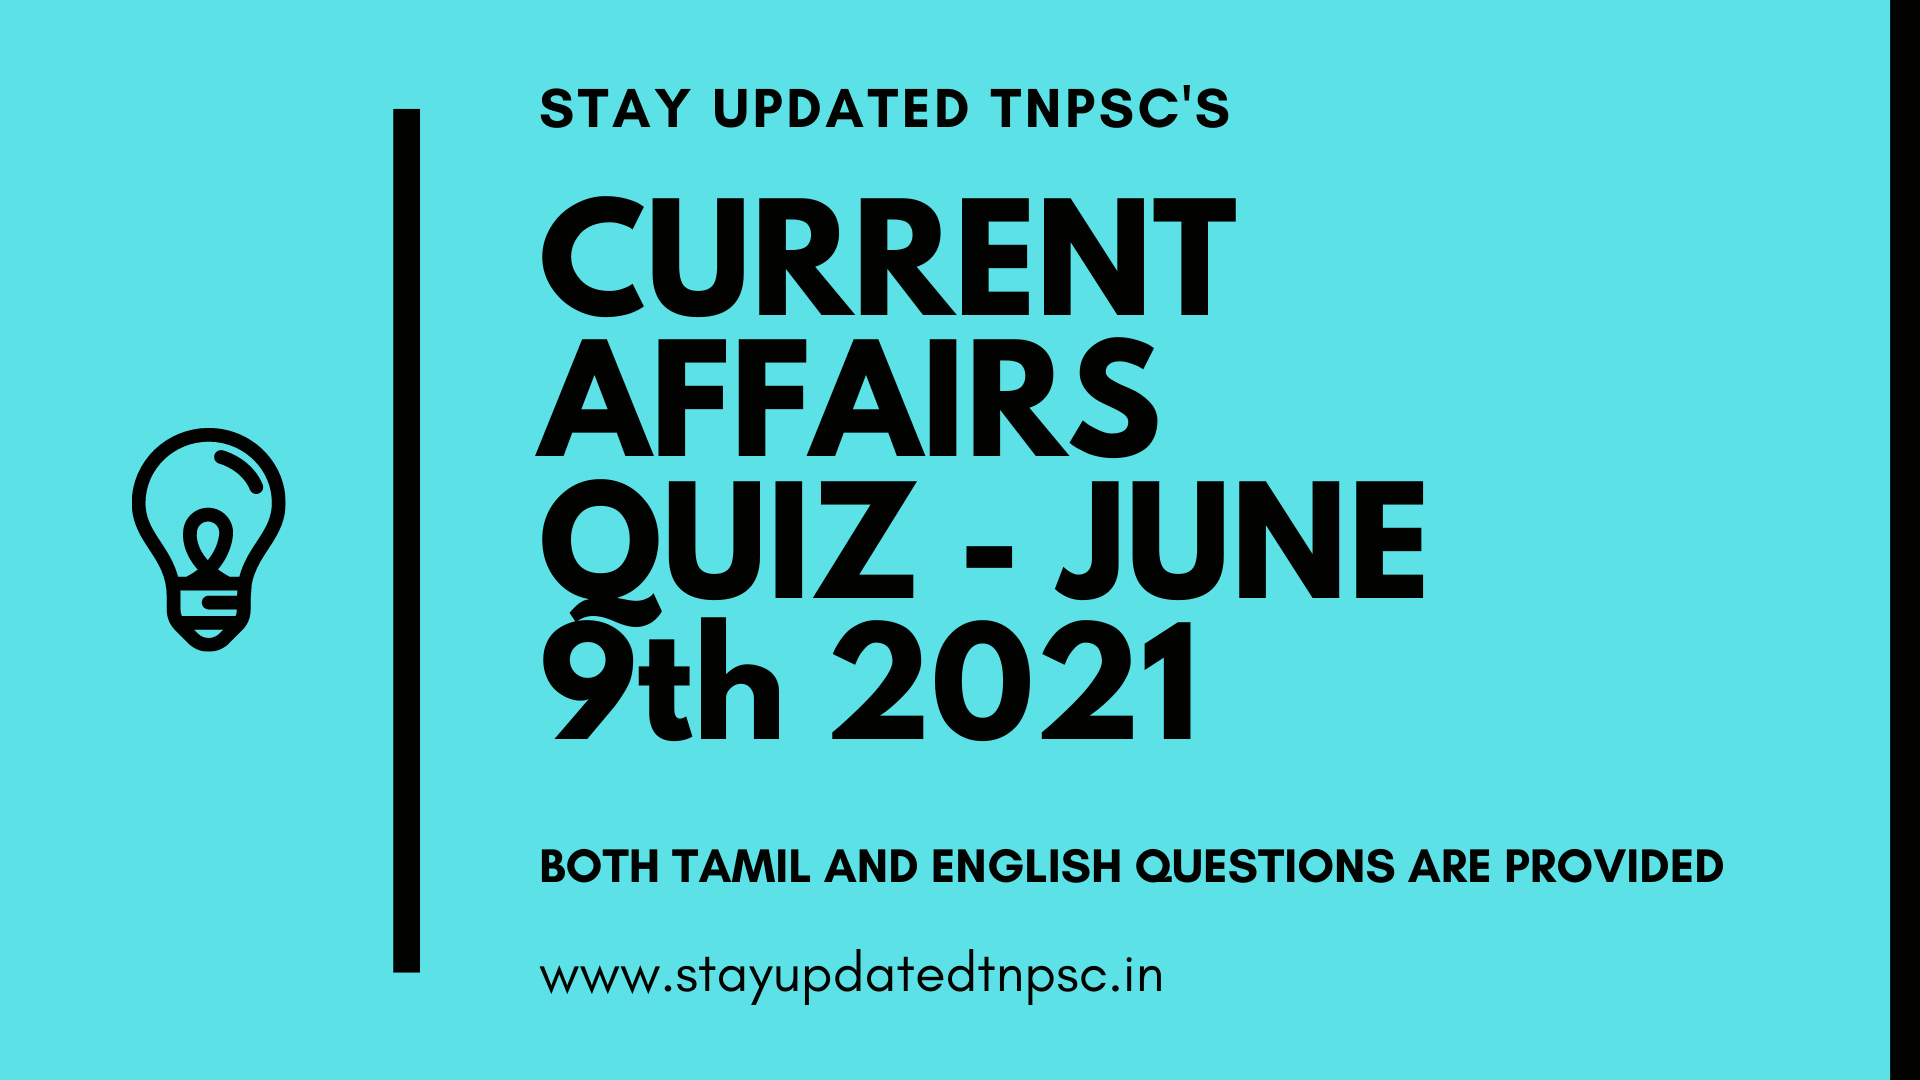 TNPSC DAILY CURRENT AFFAIRS: 09 JUNE 2021